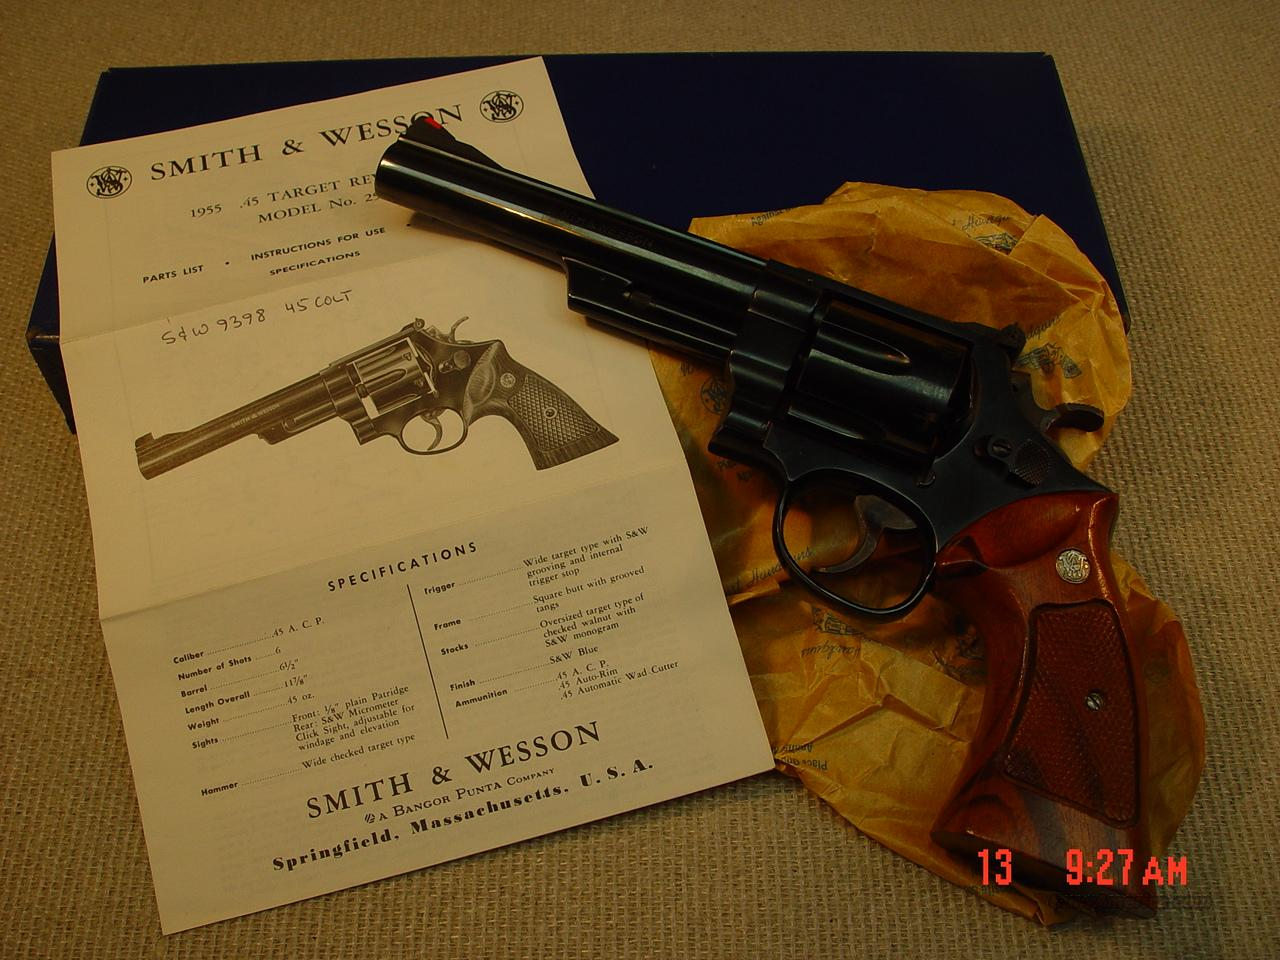 SMITH & WESSON Model 25-5  Guns > Pistols > Smith & Wesson Revolvers > Full Frame Revolver